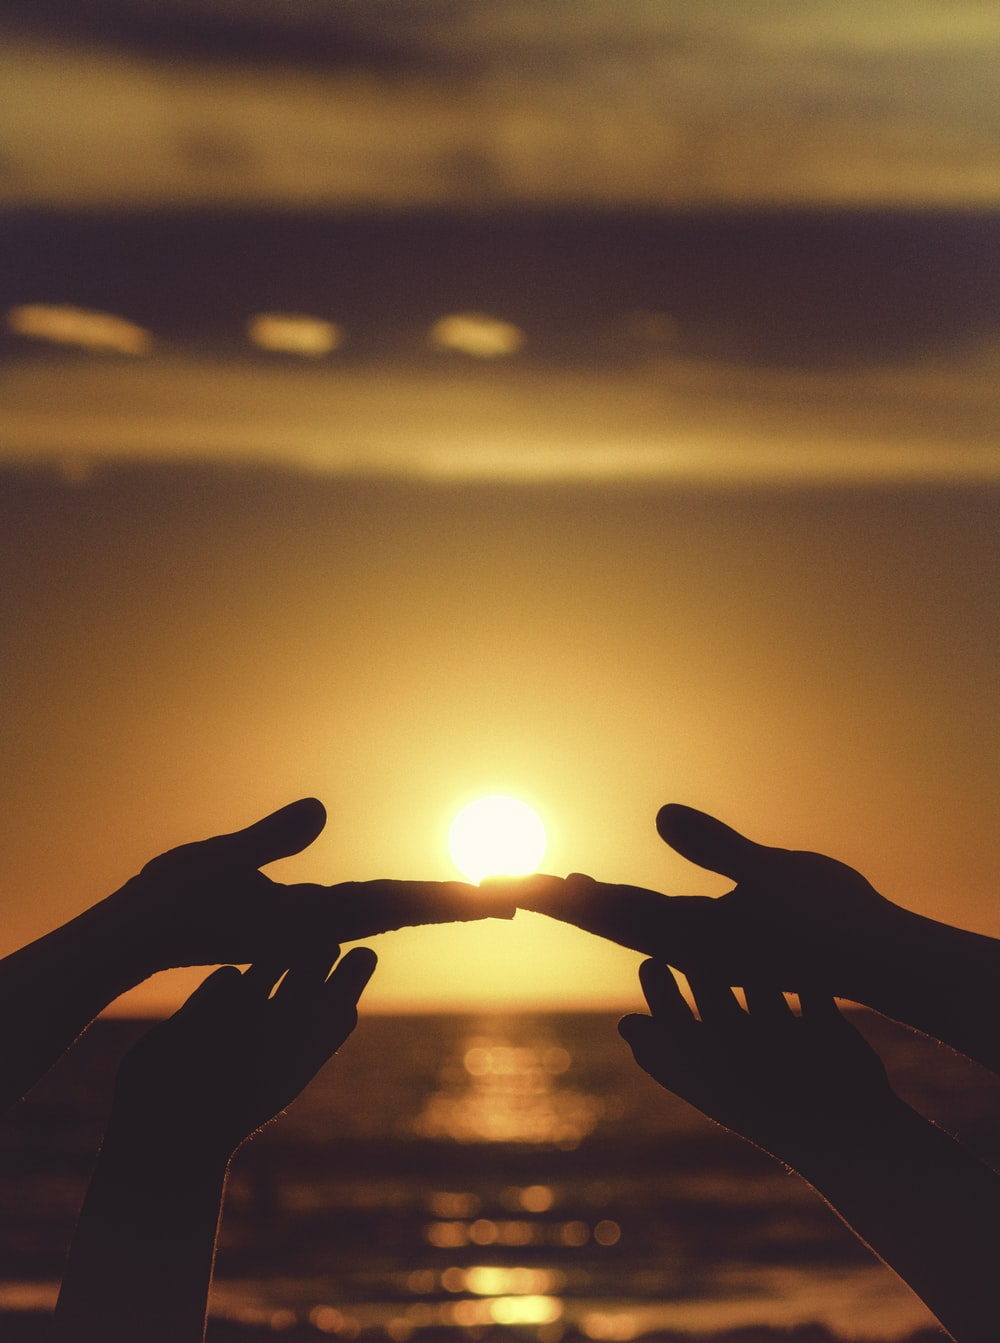 silhouette of persons hand during sunset